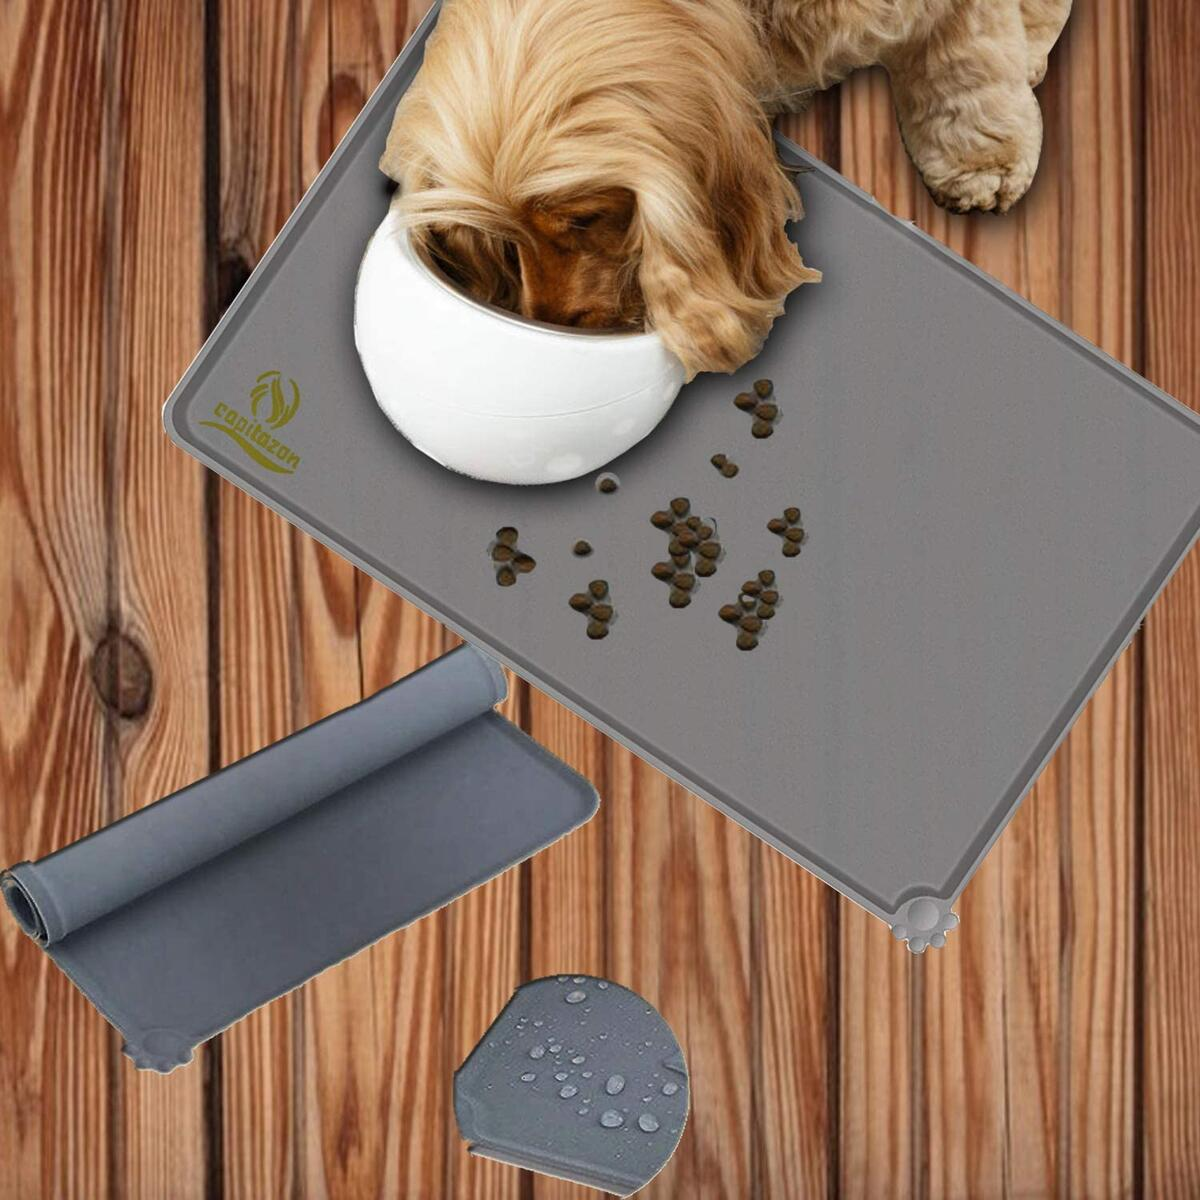 Capitazon Pet Food Mat for Dog Cat Bowls & Chewing Ball | Waterproof Silicone Pet Place Mat Tray with Raised Edges Nonslip & Easy to Wash | Dog Toy for Chewing & Food Treat Ball